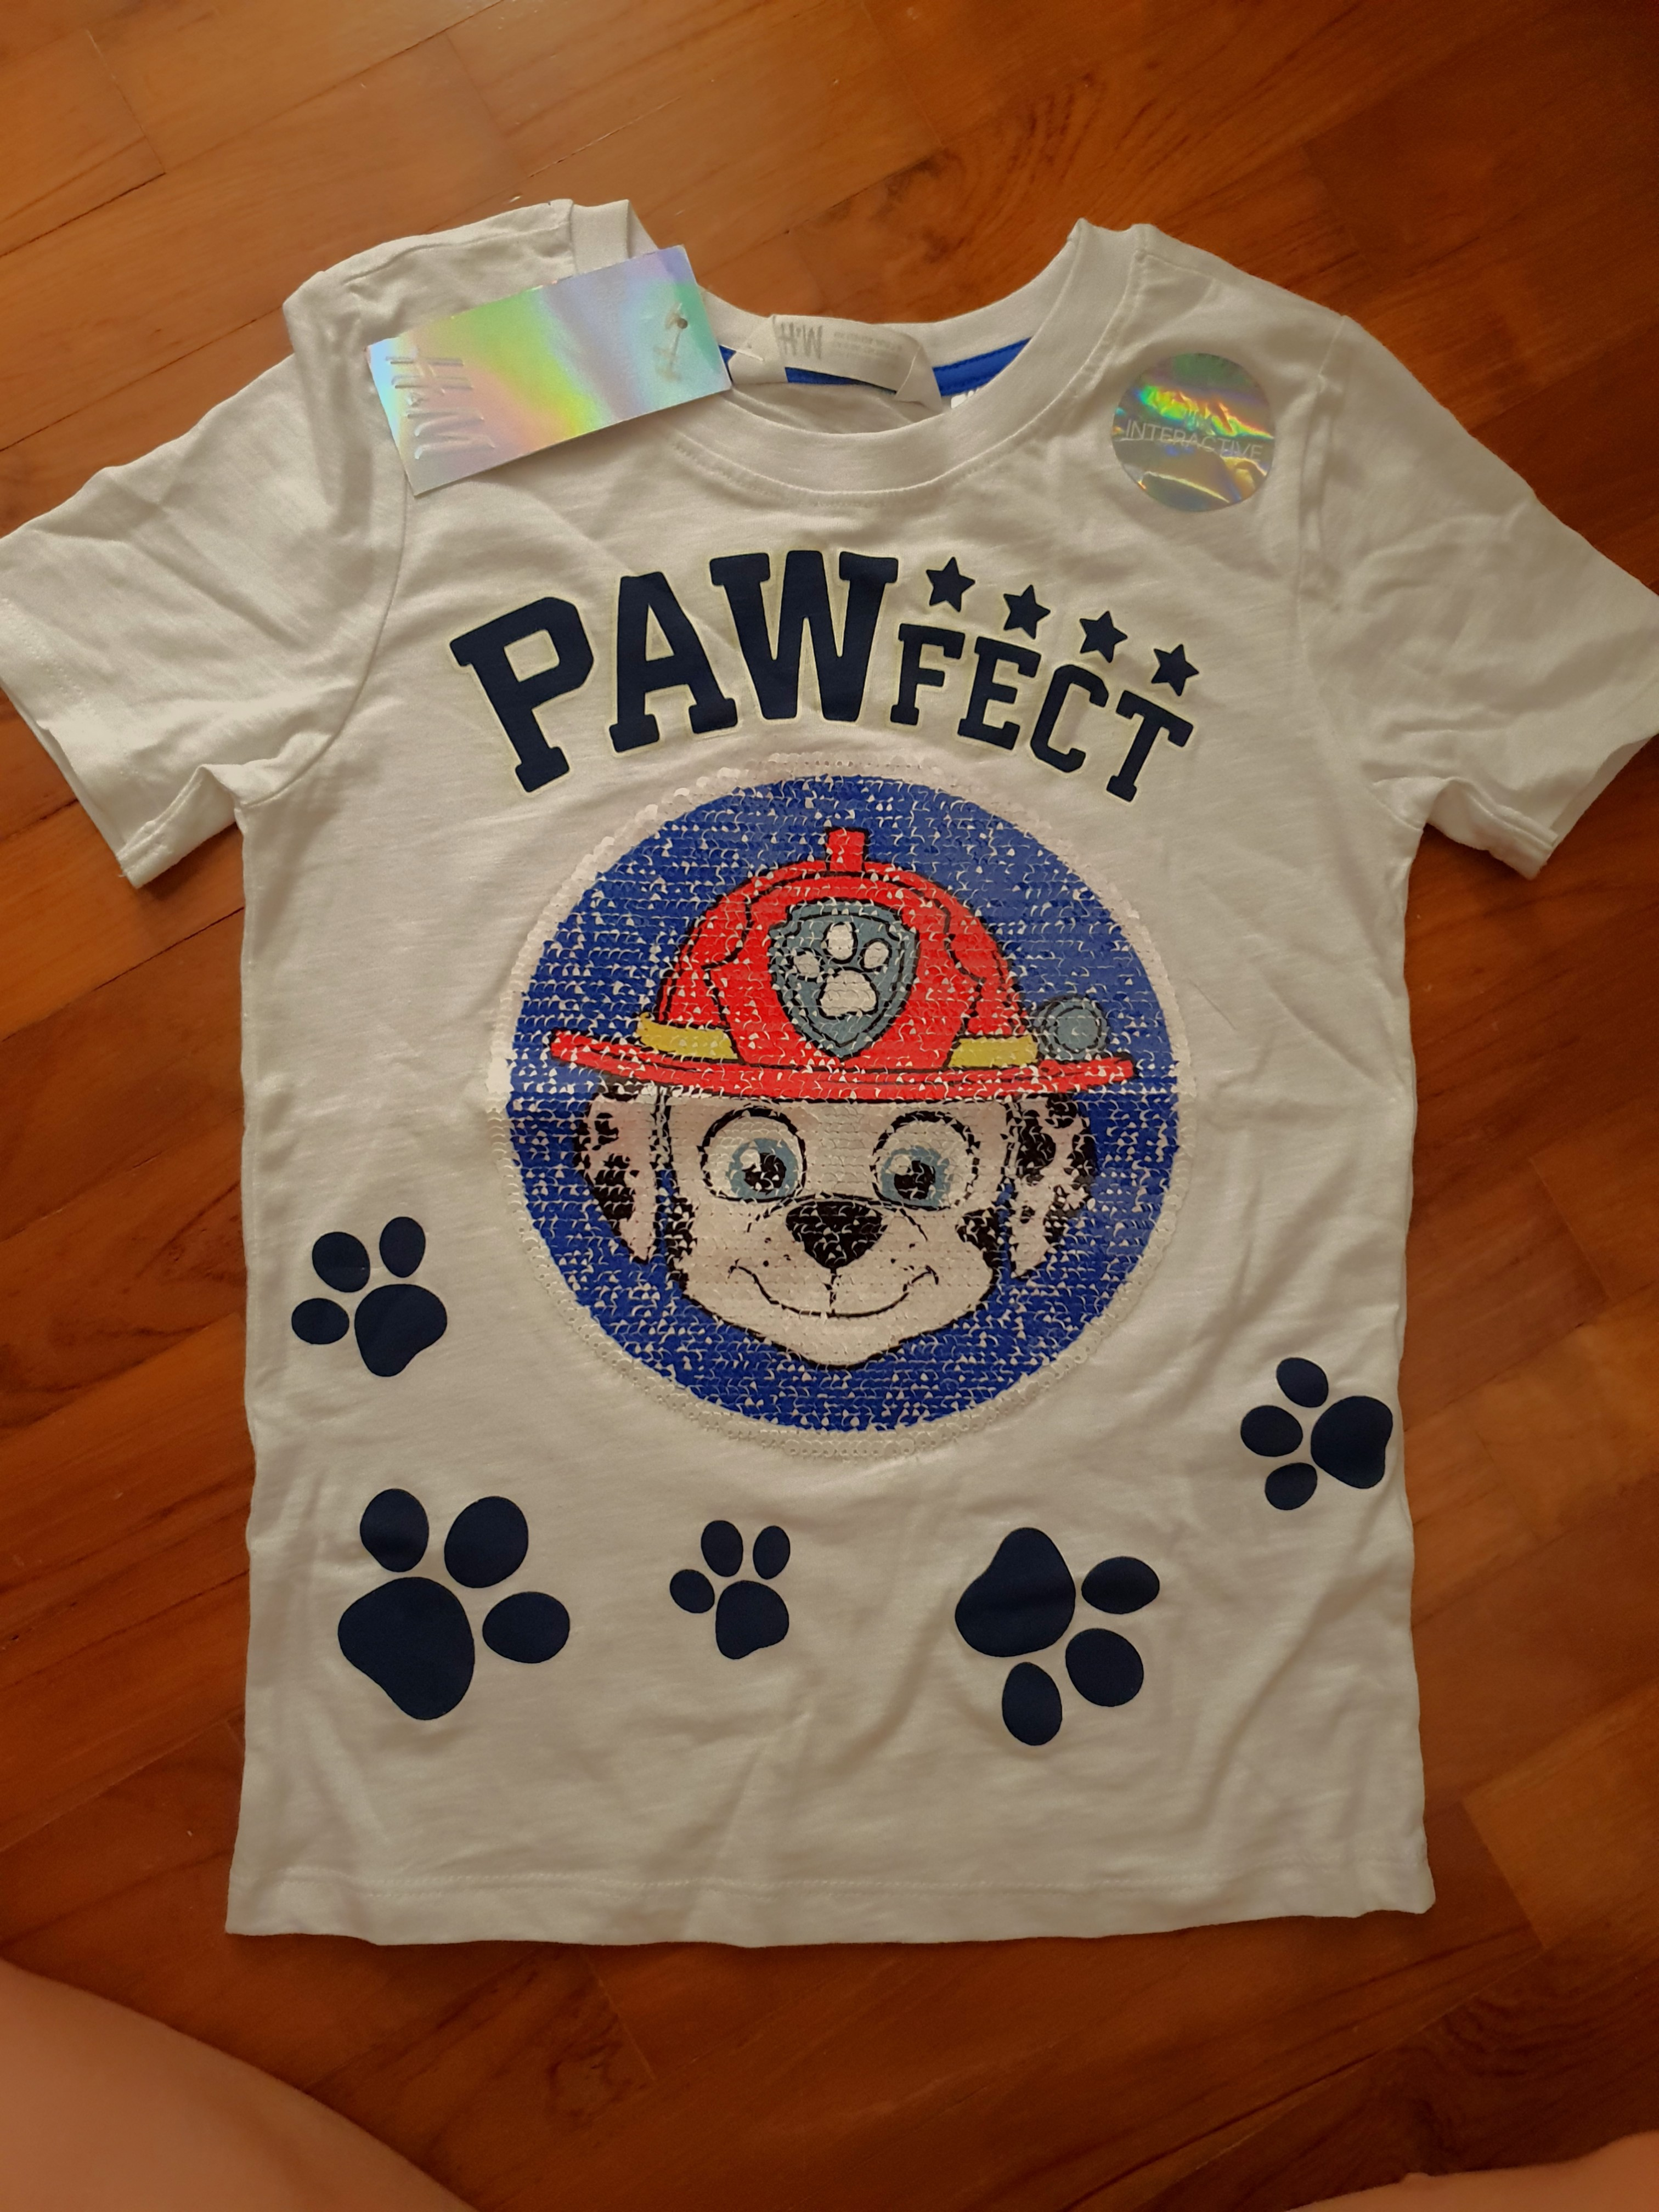 ae3c52a8 Paw Patrol T shirt, Babies & Kids, Boys' Apparel, 4 to 7 Years on ...